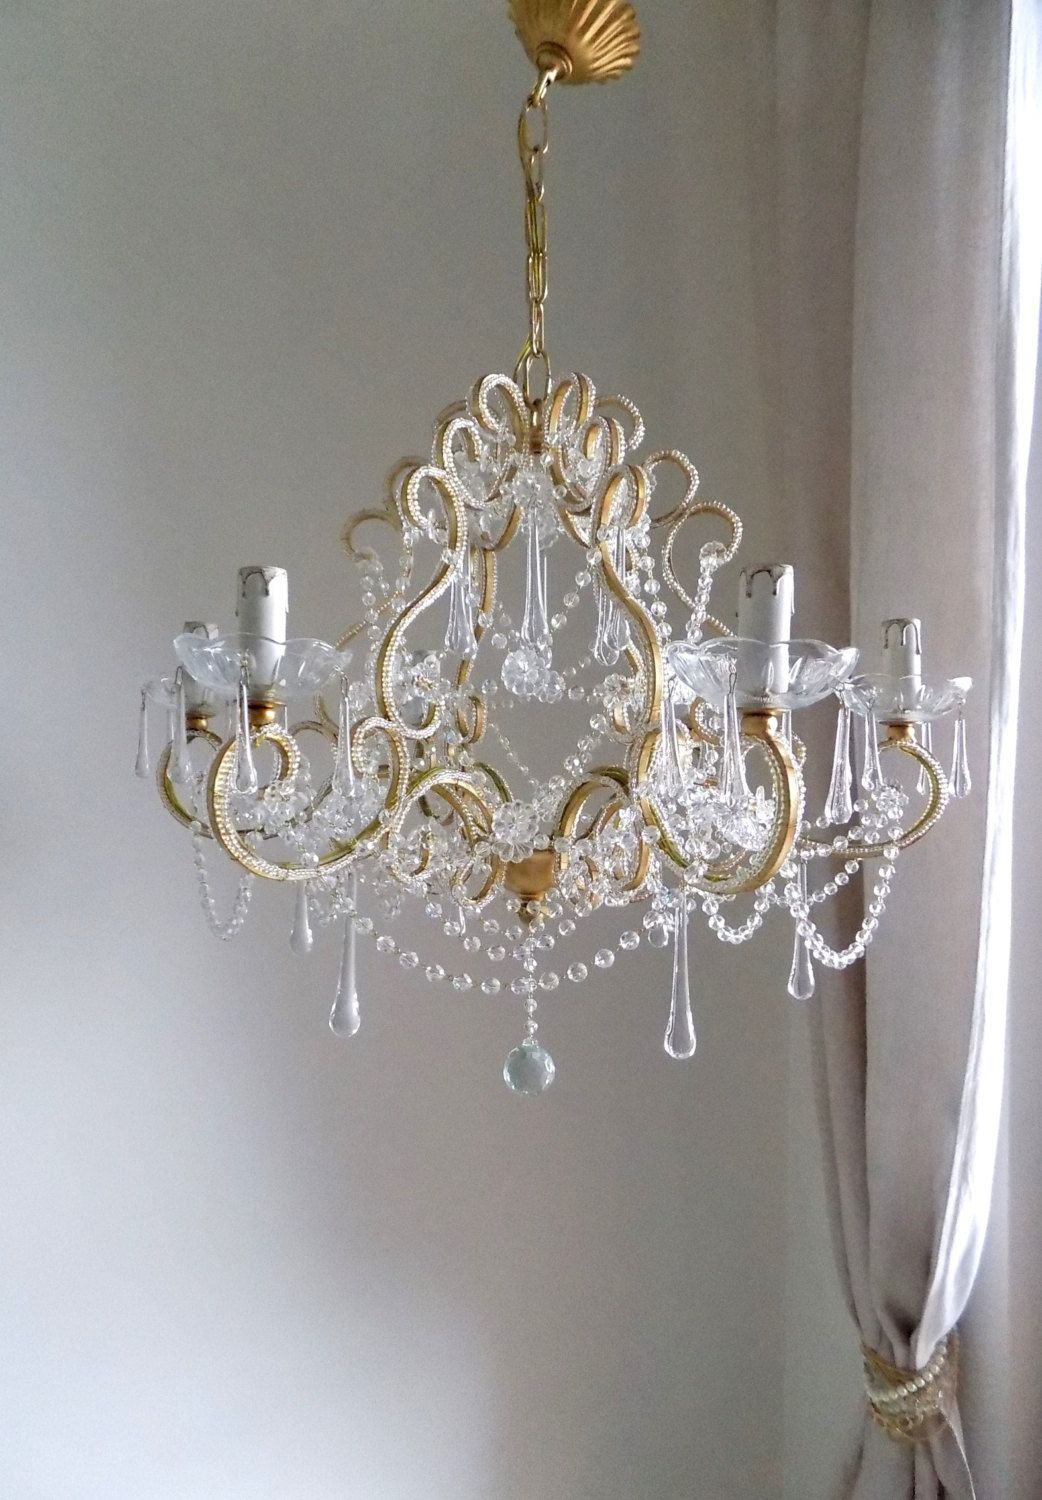 Italian Crystal Chandelier Gold Leaf Birdcage Chandelier Antique Style 6 Lights Clear Murano Drops Macaroni Beads Crystal Swags In 2020 Swag Chandelier Low Ceiling Chandelier Crystal Chandelier